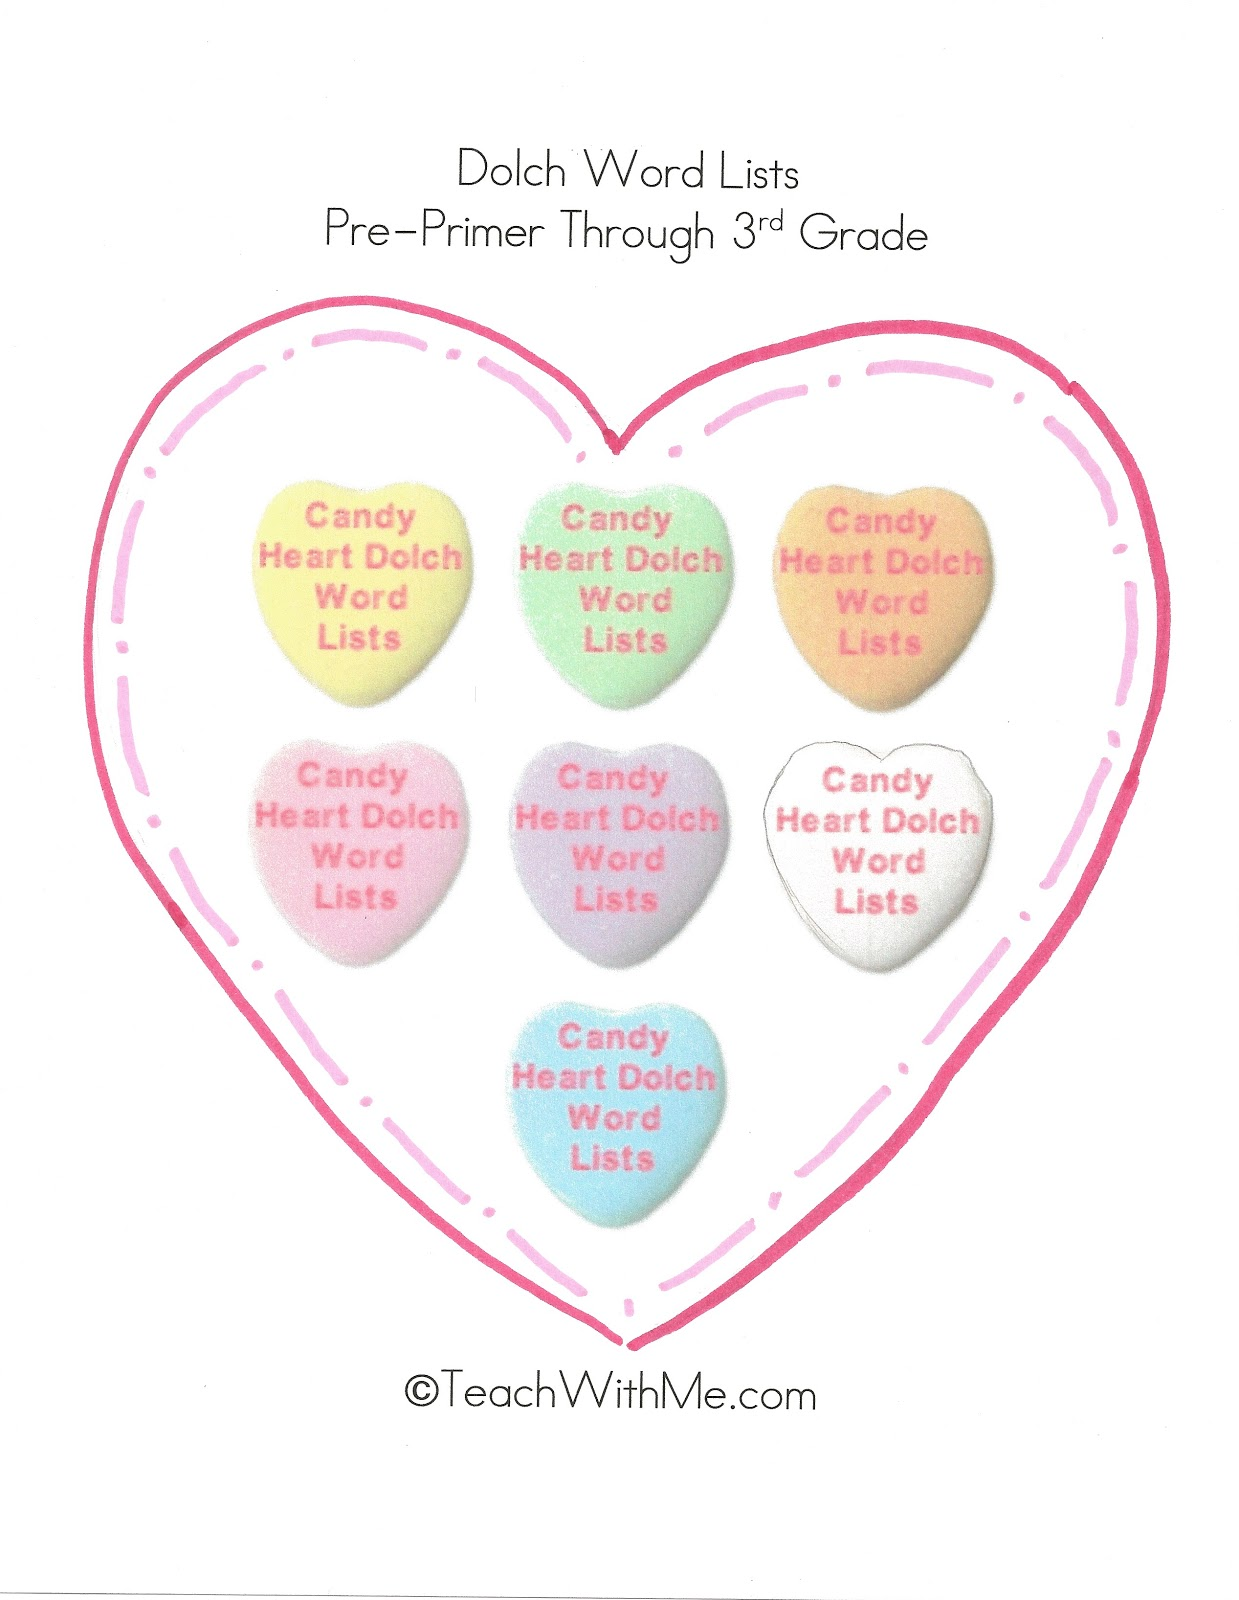 Dolch Words On Candy Hearts - Classroom Freebies